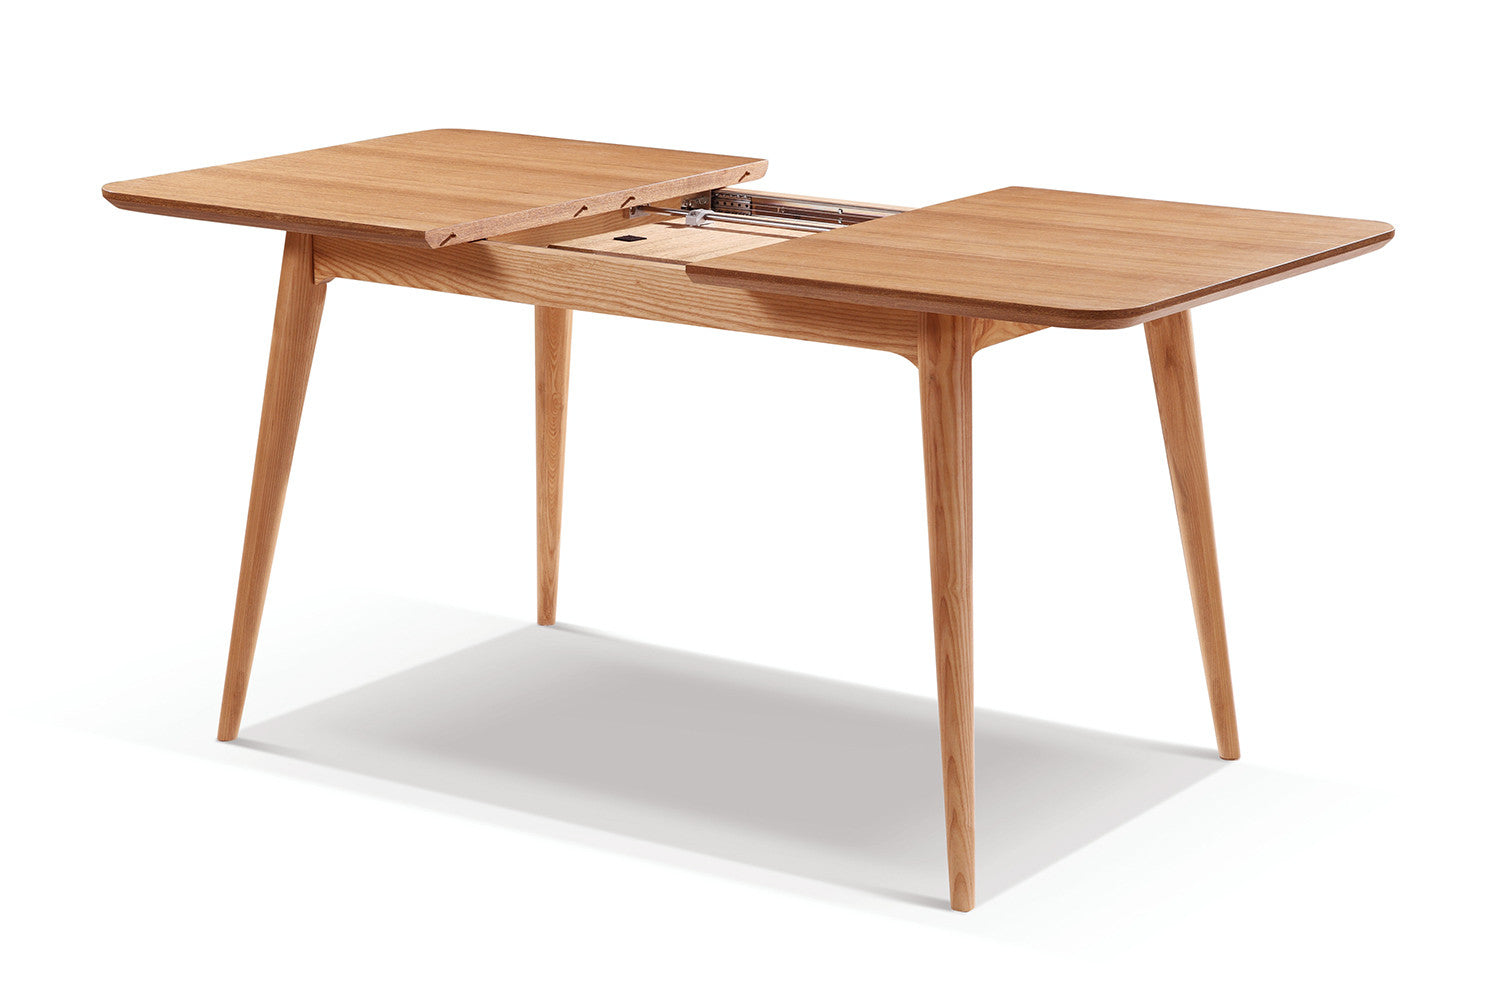 Table de salle manger extensible en bois adda dewarens for Table a manger moderne en bois